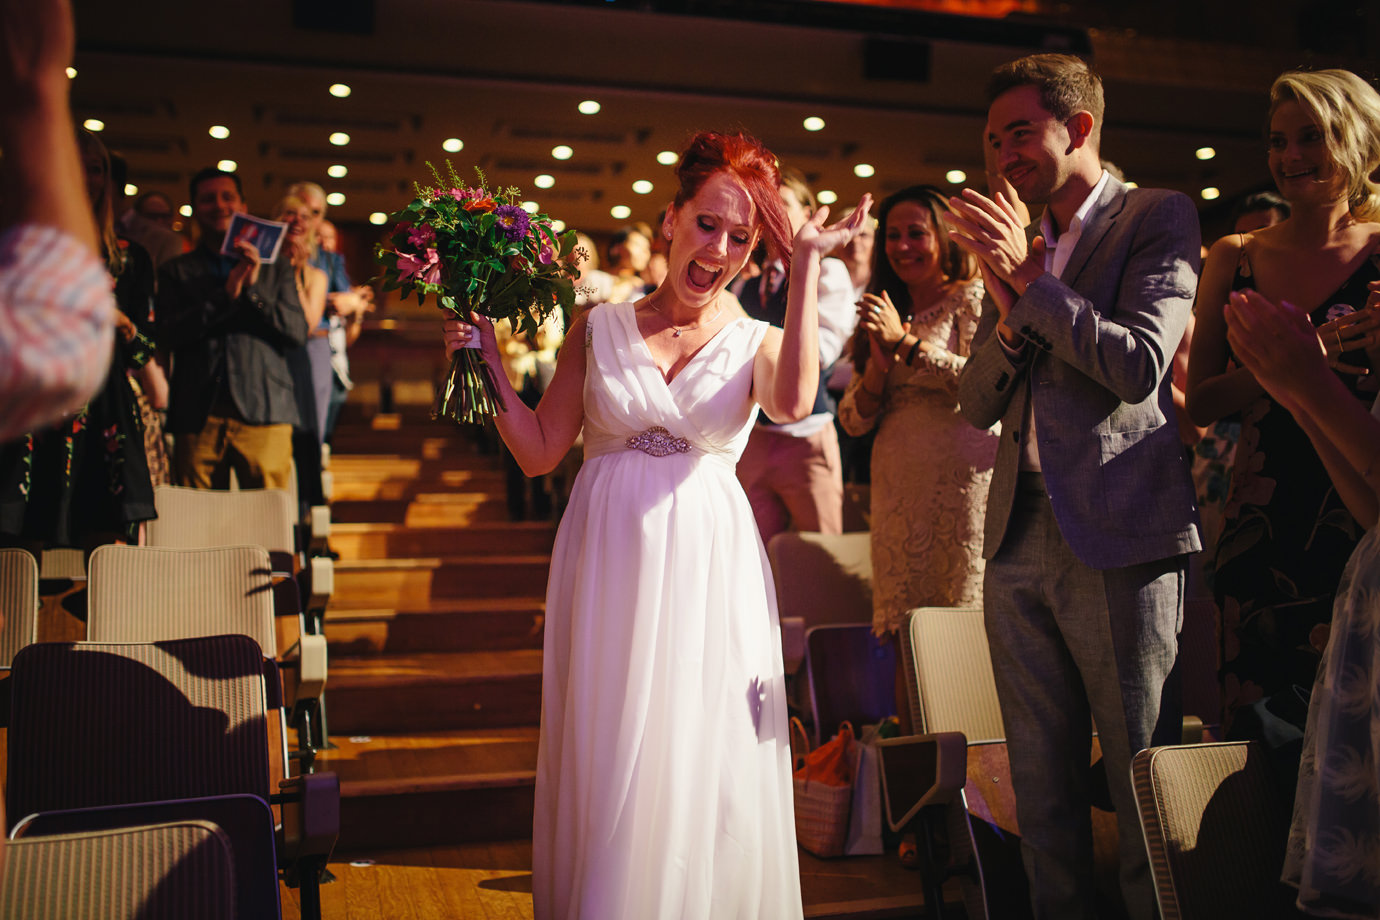 Brides entrance, documentary wedding photography, Royal Festival Hall, London